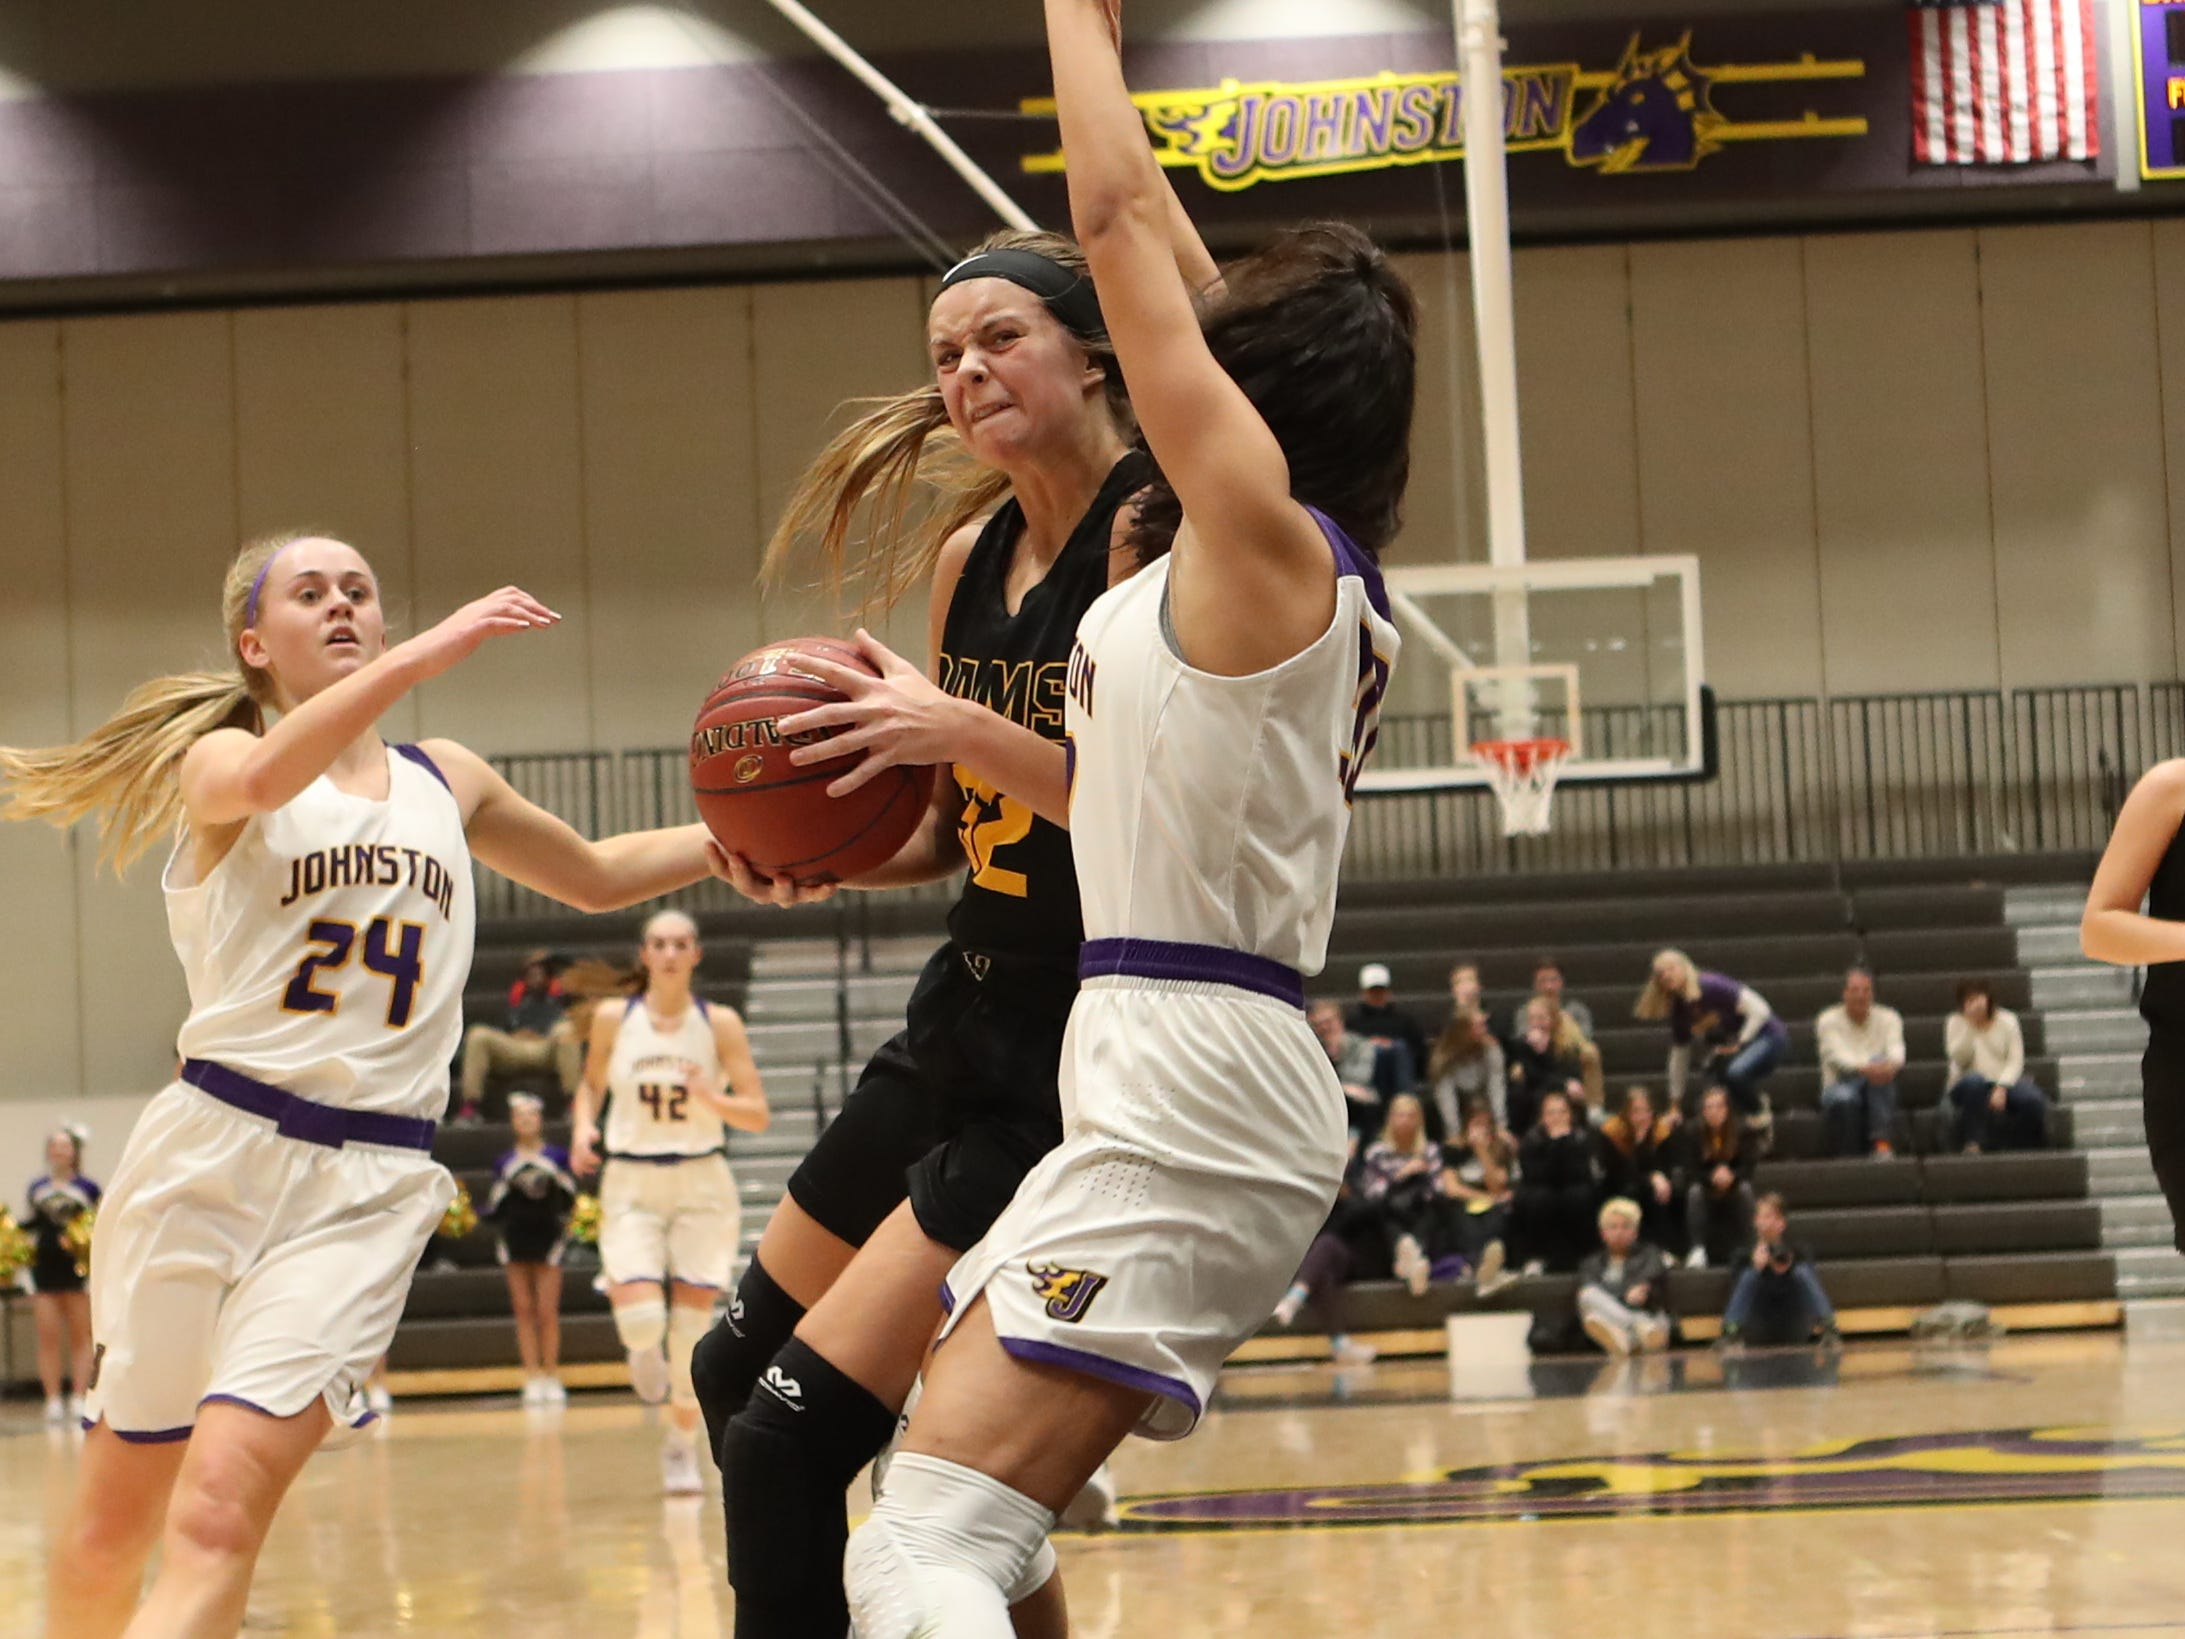 Southeast Polk's Maggie McGraw (32) runs into a defender Feb. 5 in a game against No. 1 Johnston at Johnston High School. The Dragons won the game 89-67. McGraw had 23 points.